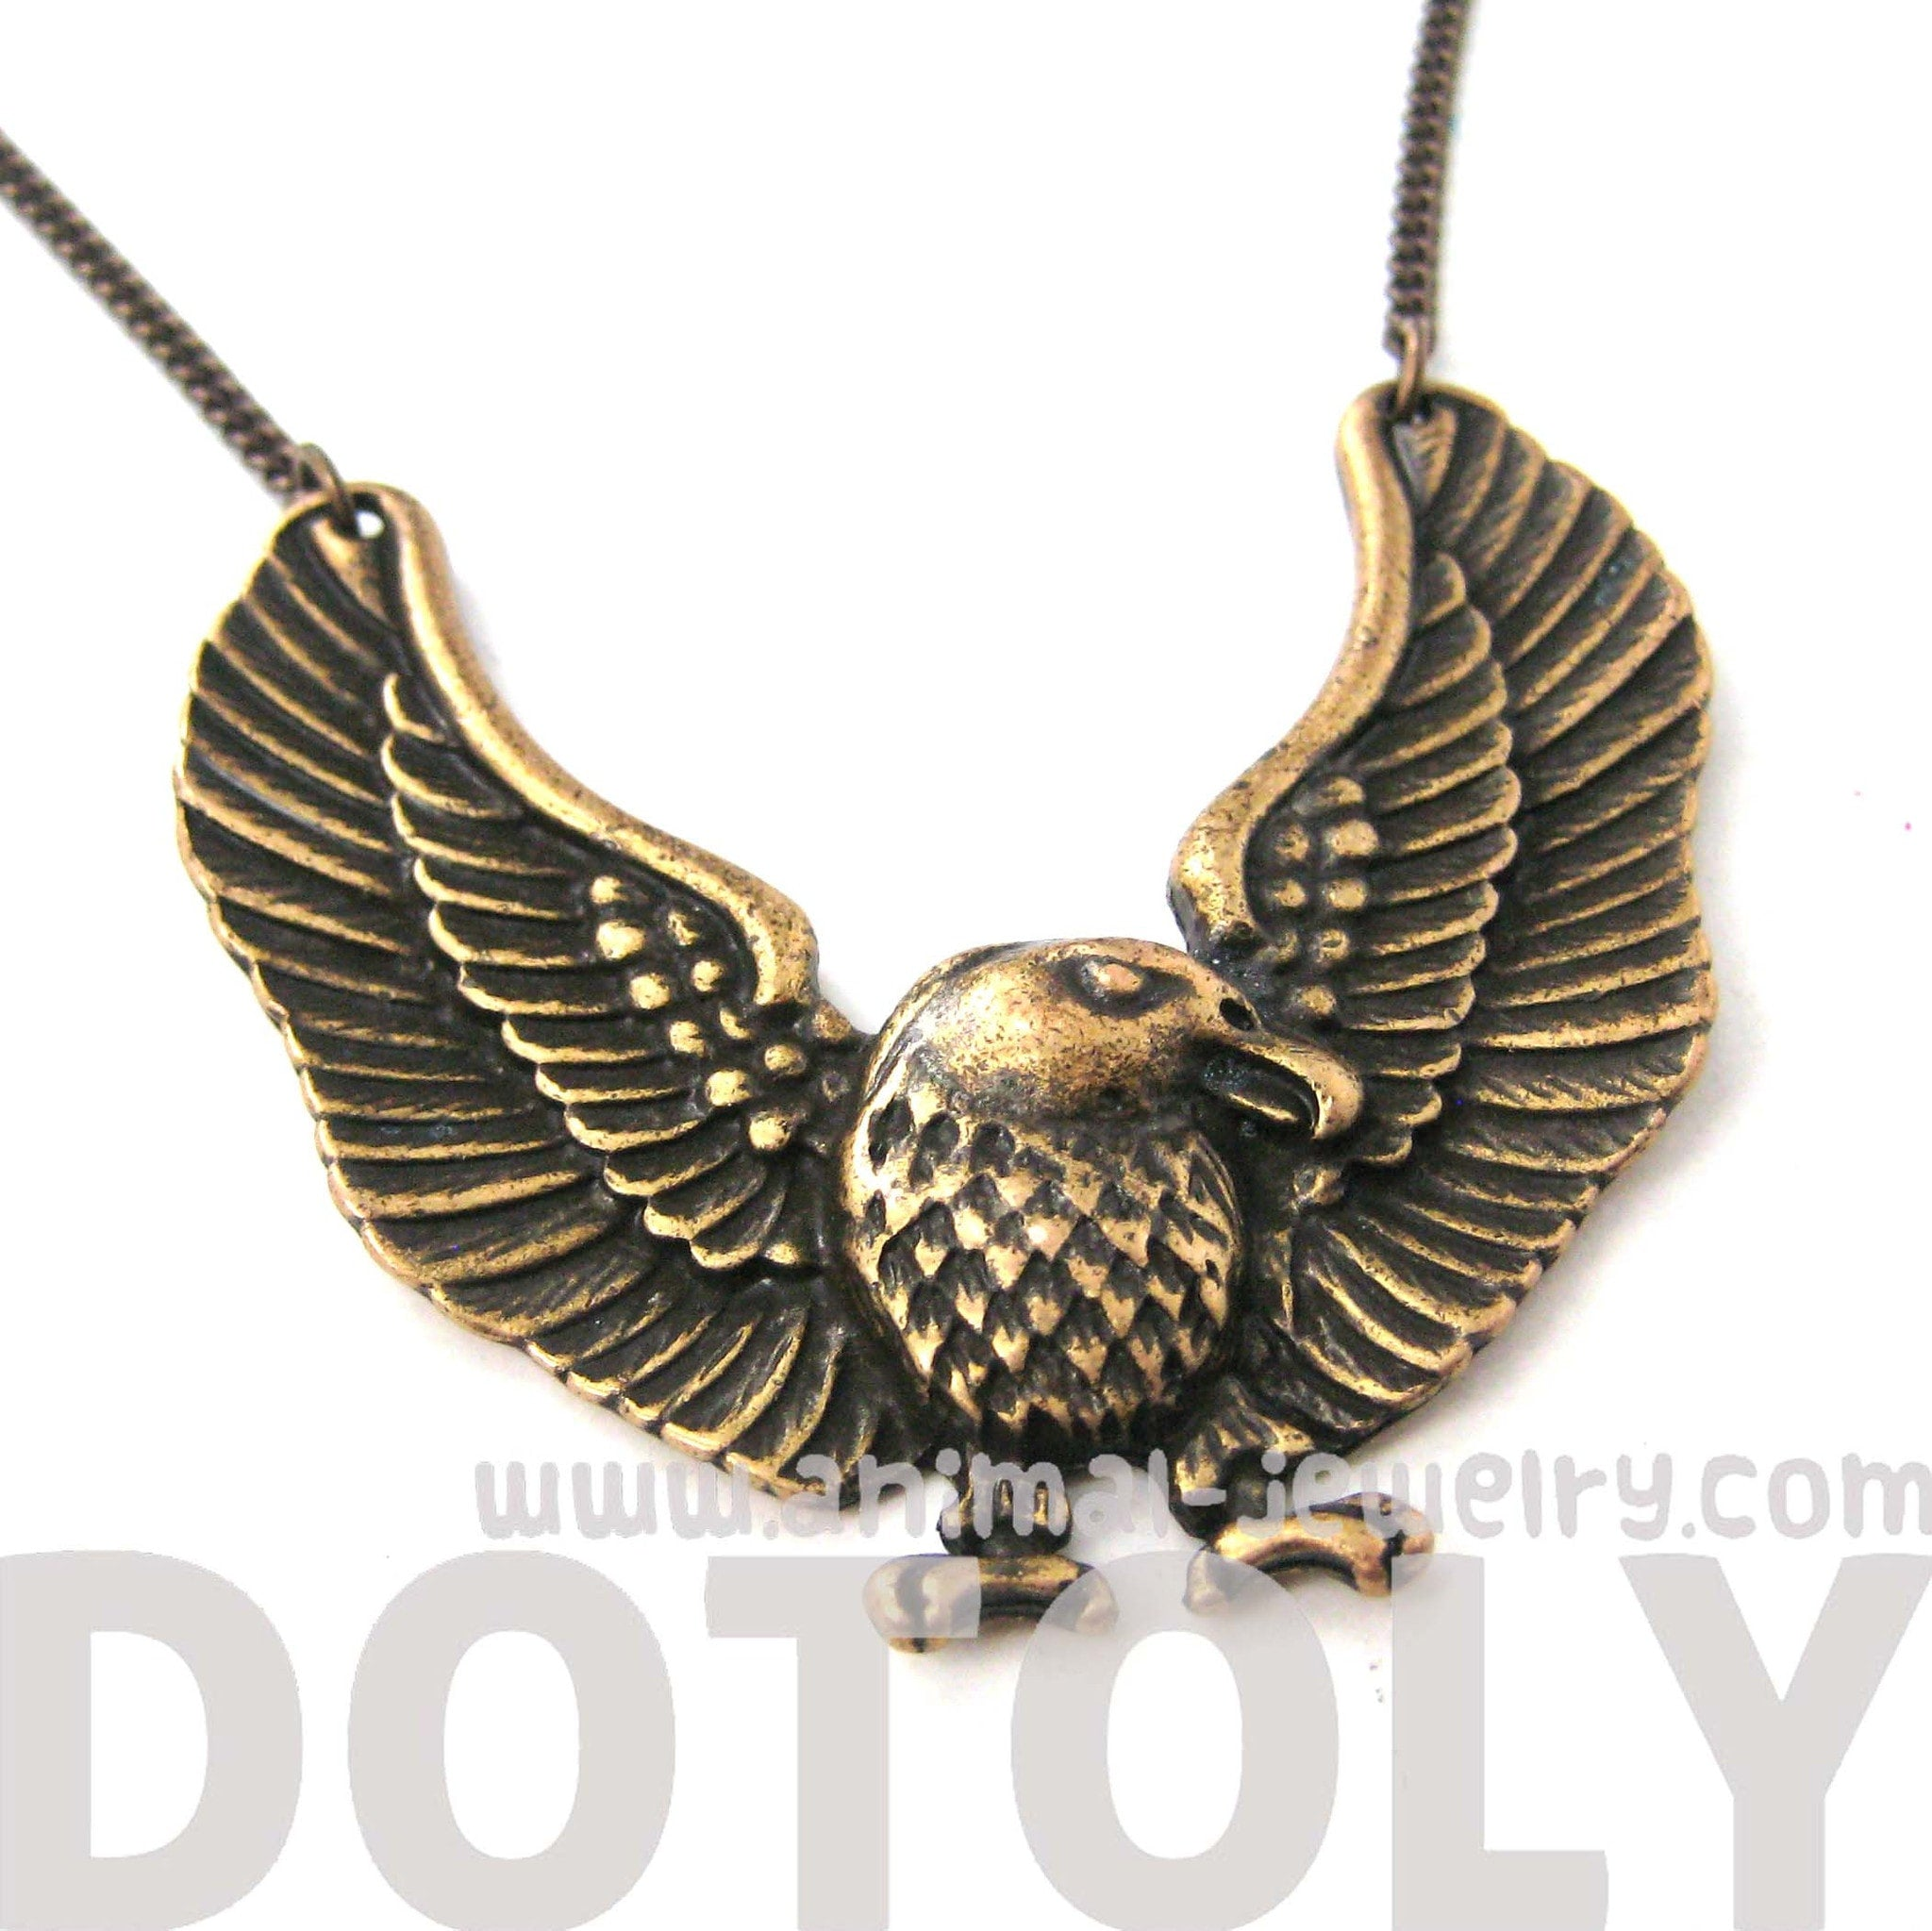 Large Bald Eagle Hawk Bird Shaped Animal Pendant Necklace in Bronze